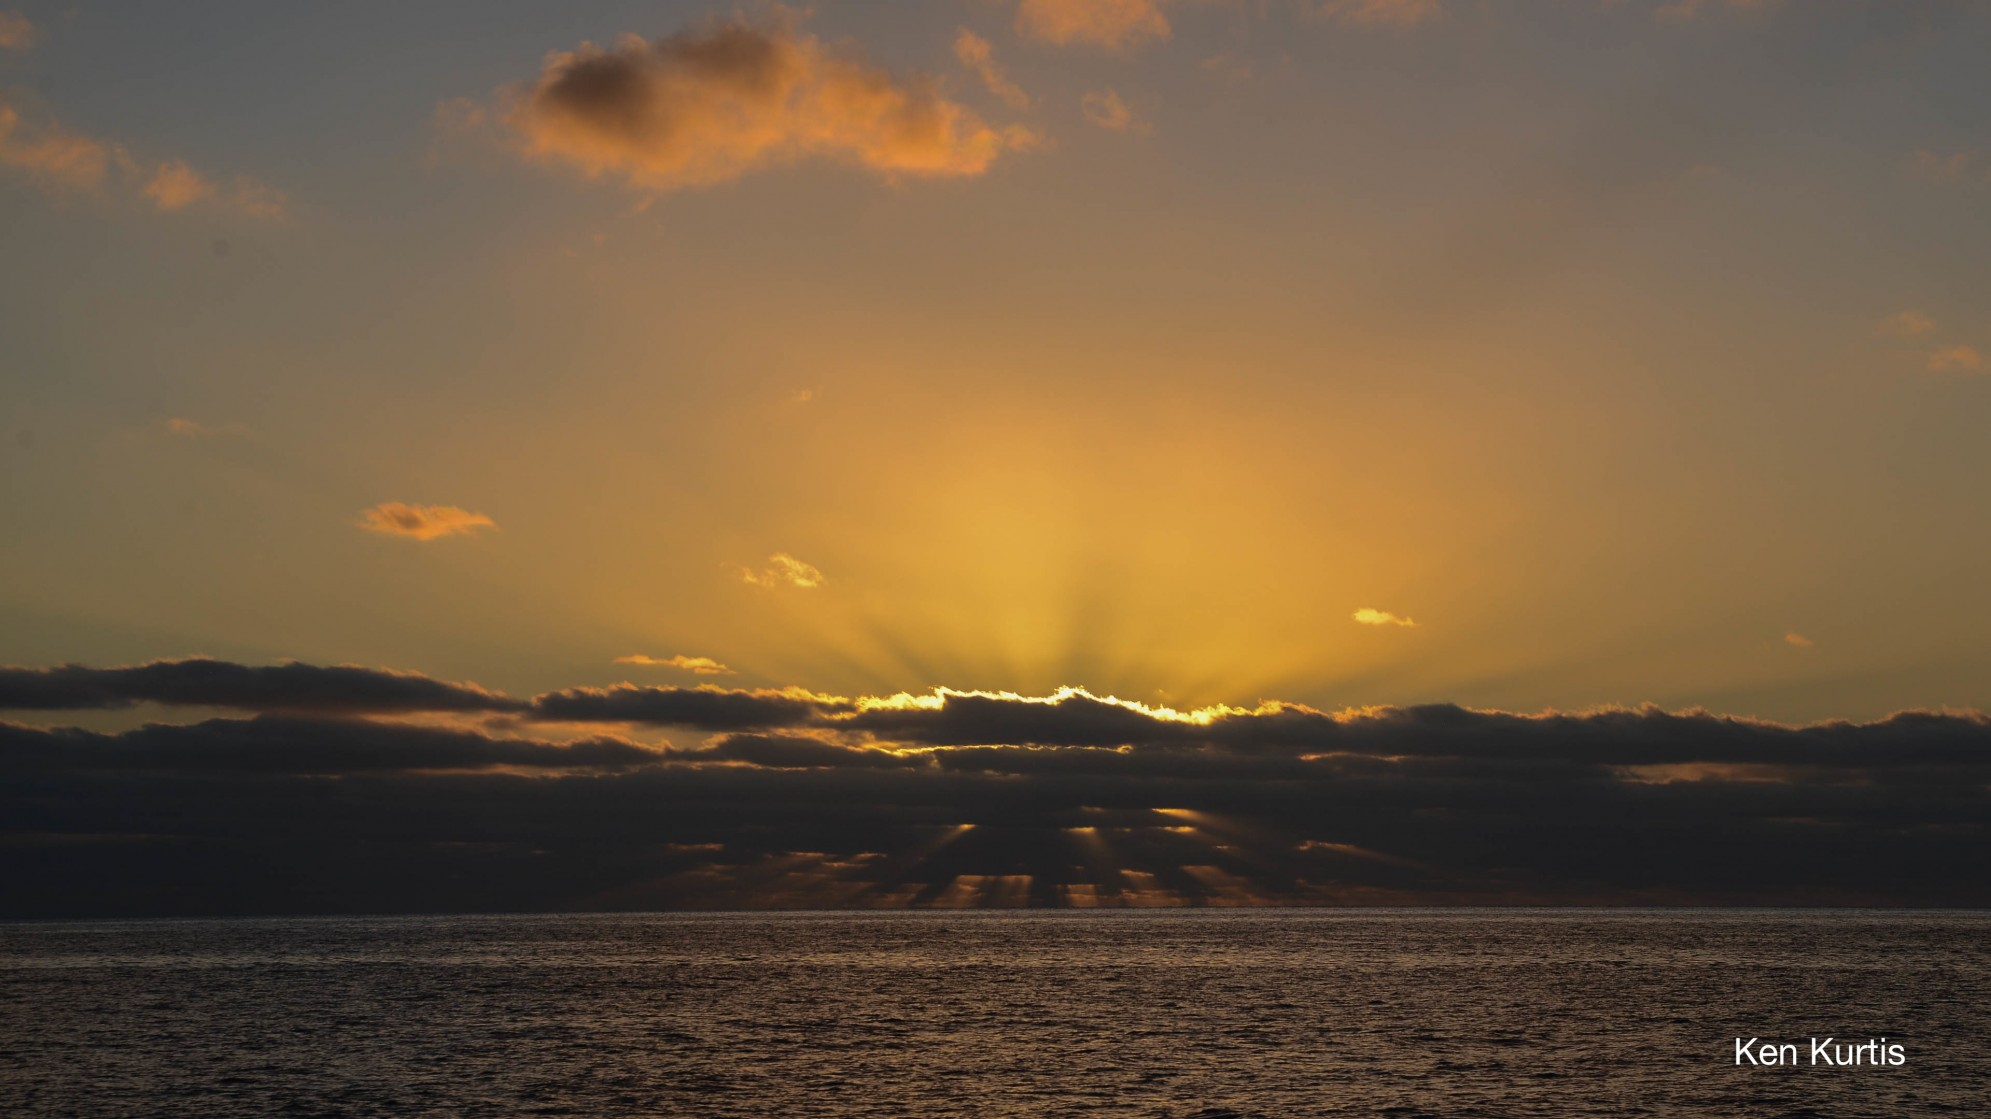 Sunrise at Guadalupe Island